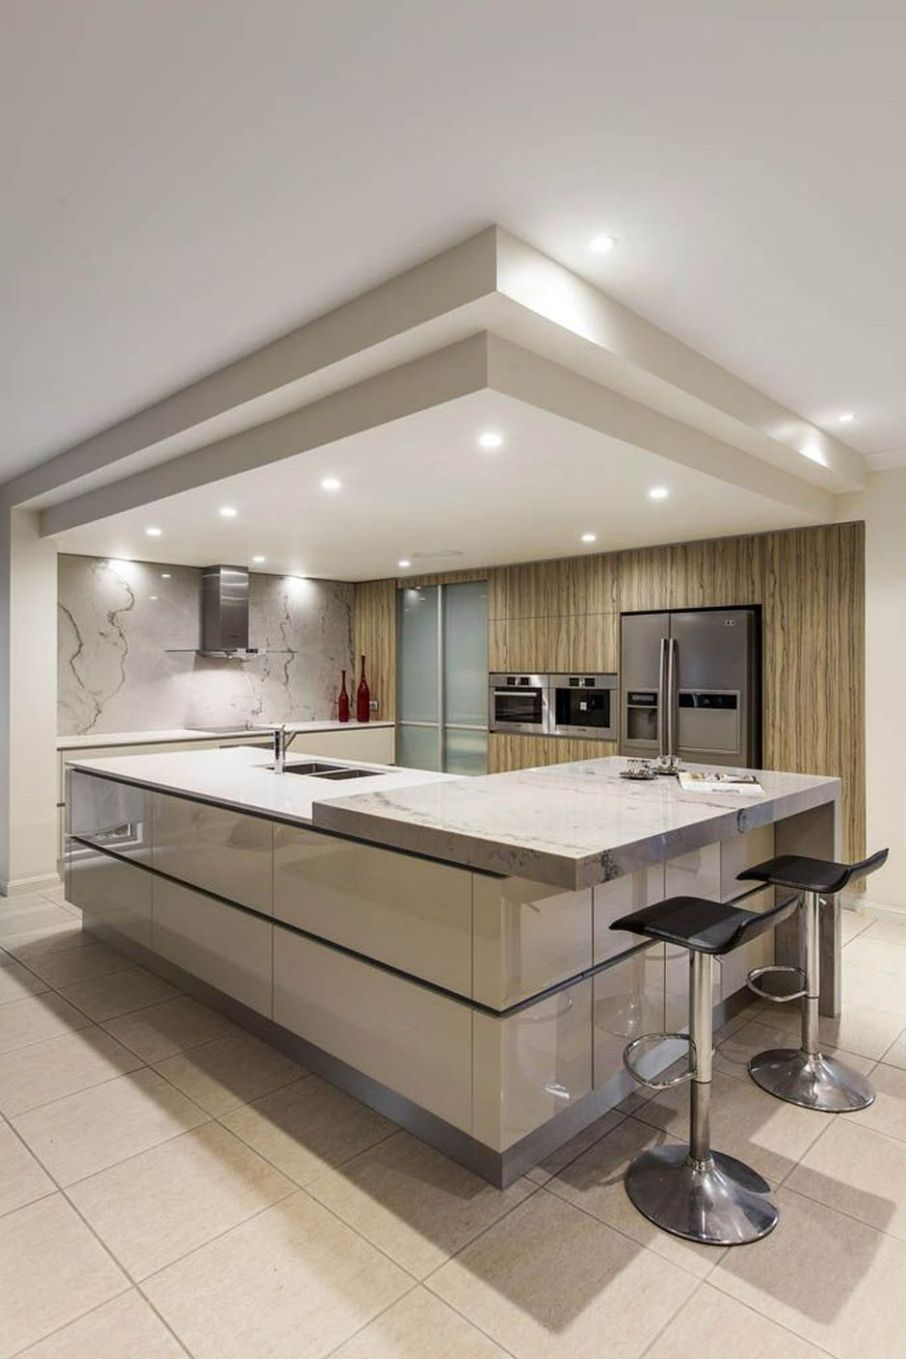 Modern And Contemporary Ceiling Design For Home Interior 41 Kitchen Ceiling Design Dream Kitchens Design Modern Kitchen Design